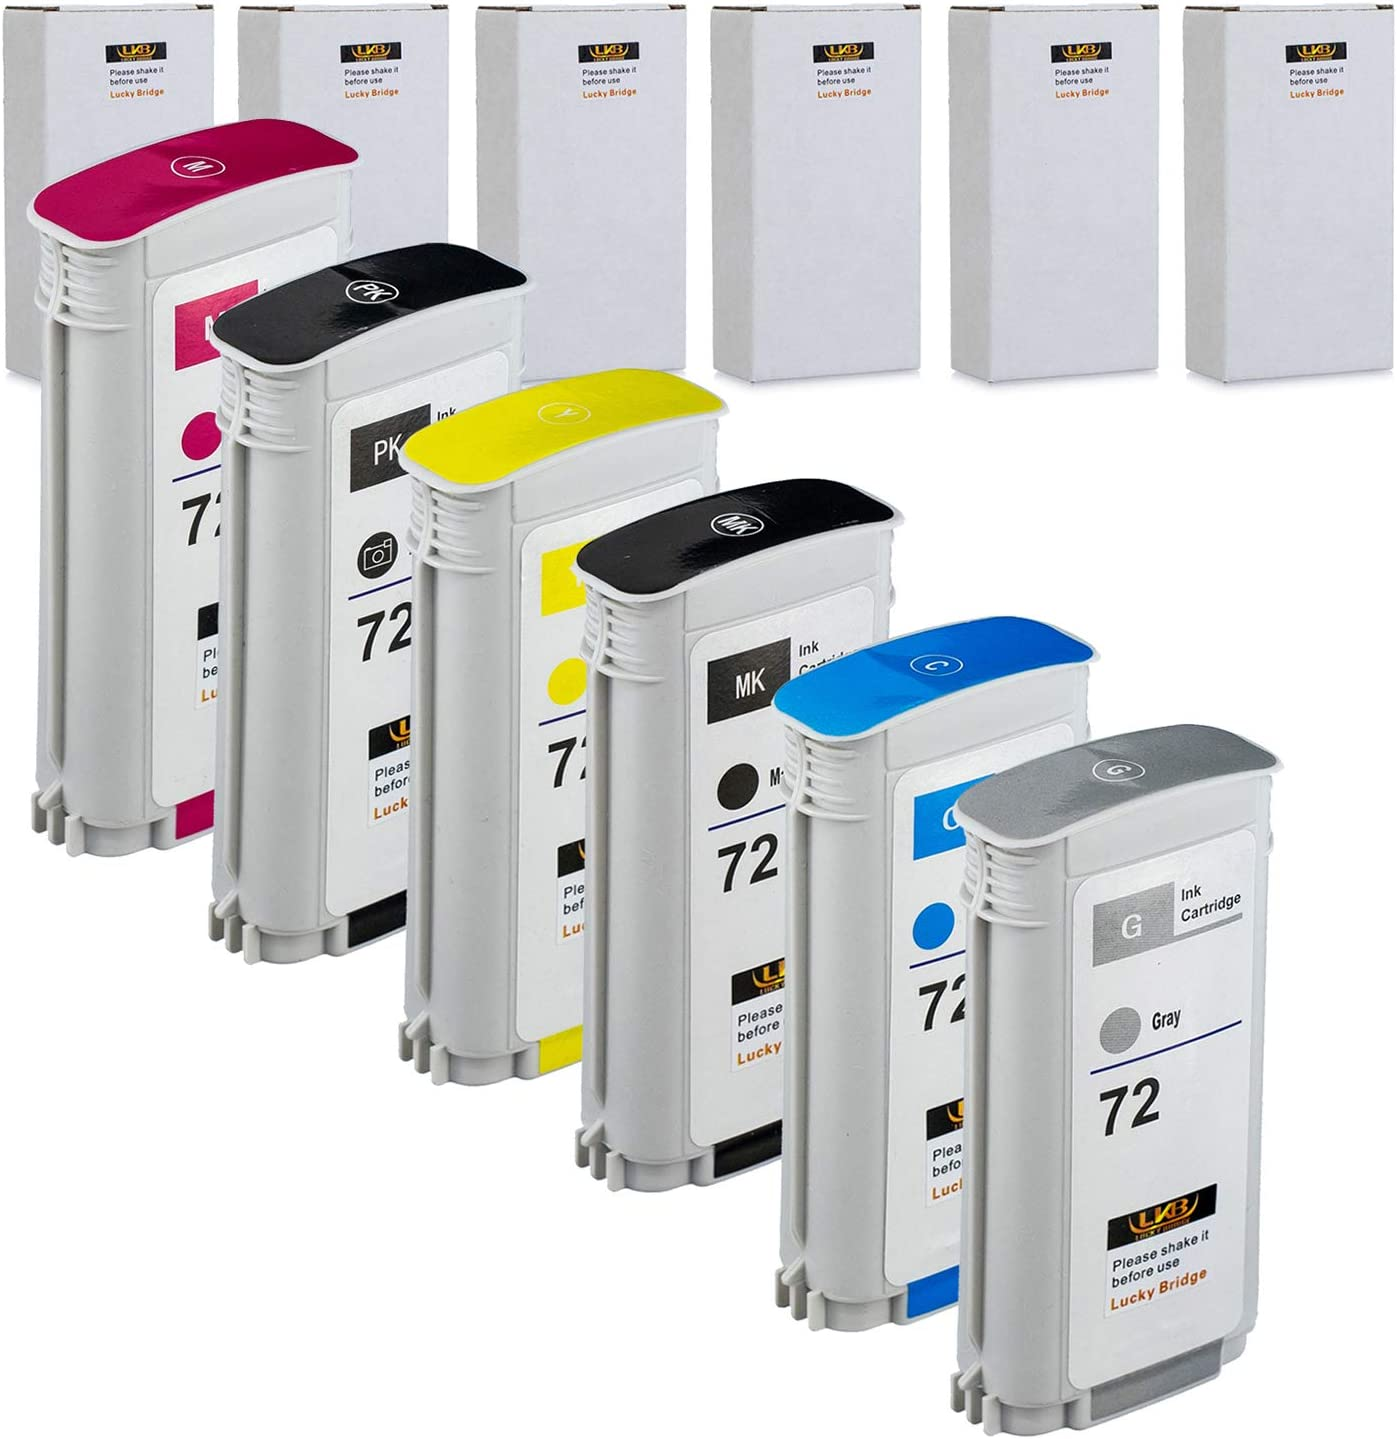 LKB 6PK Compatible HP72 Ink Cartridge Replacement with 130ML Use with designjet T1100 T1200 T1100ps T1120 SD-MFP T1120ps T2300 T610 T620 T770 Series Printer (6 Pack HP72) -US